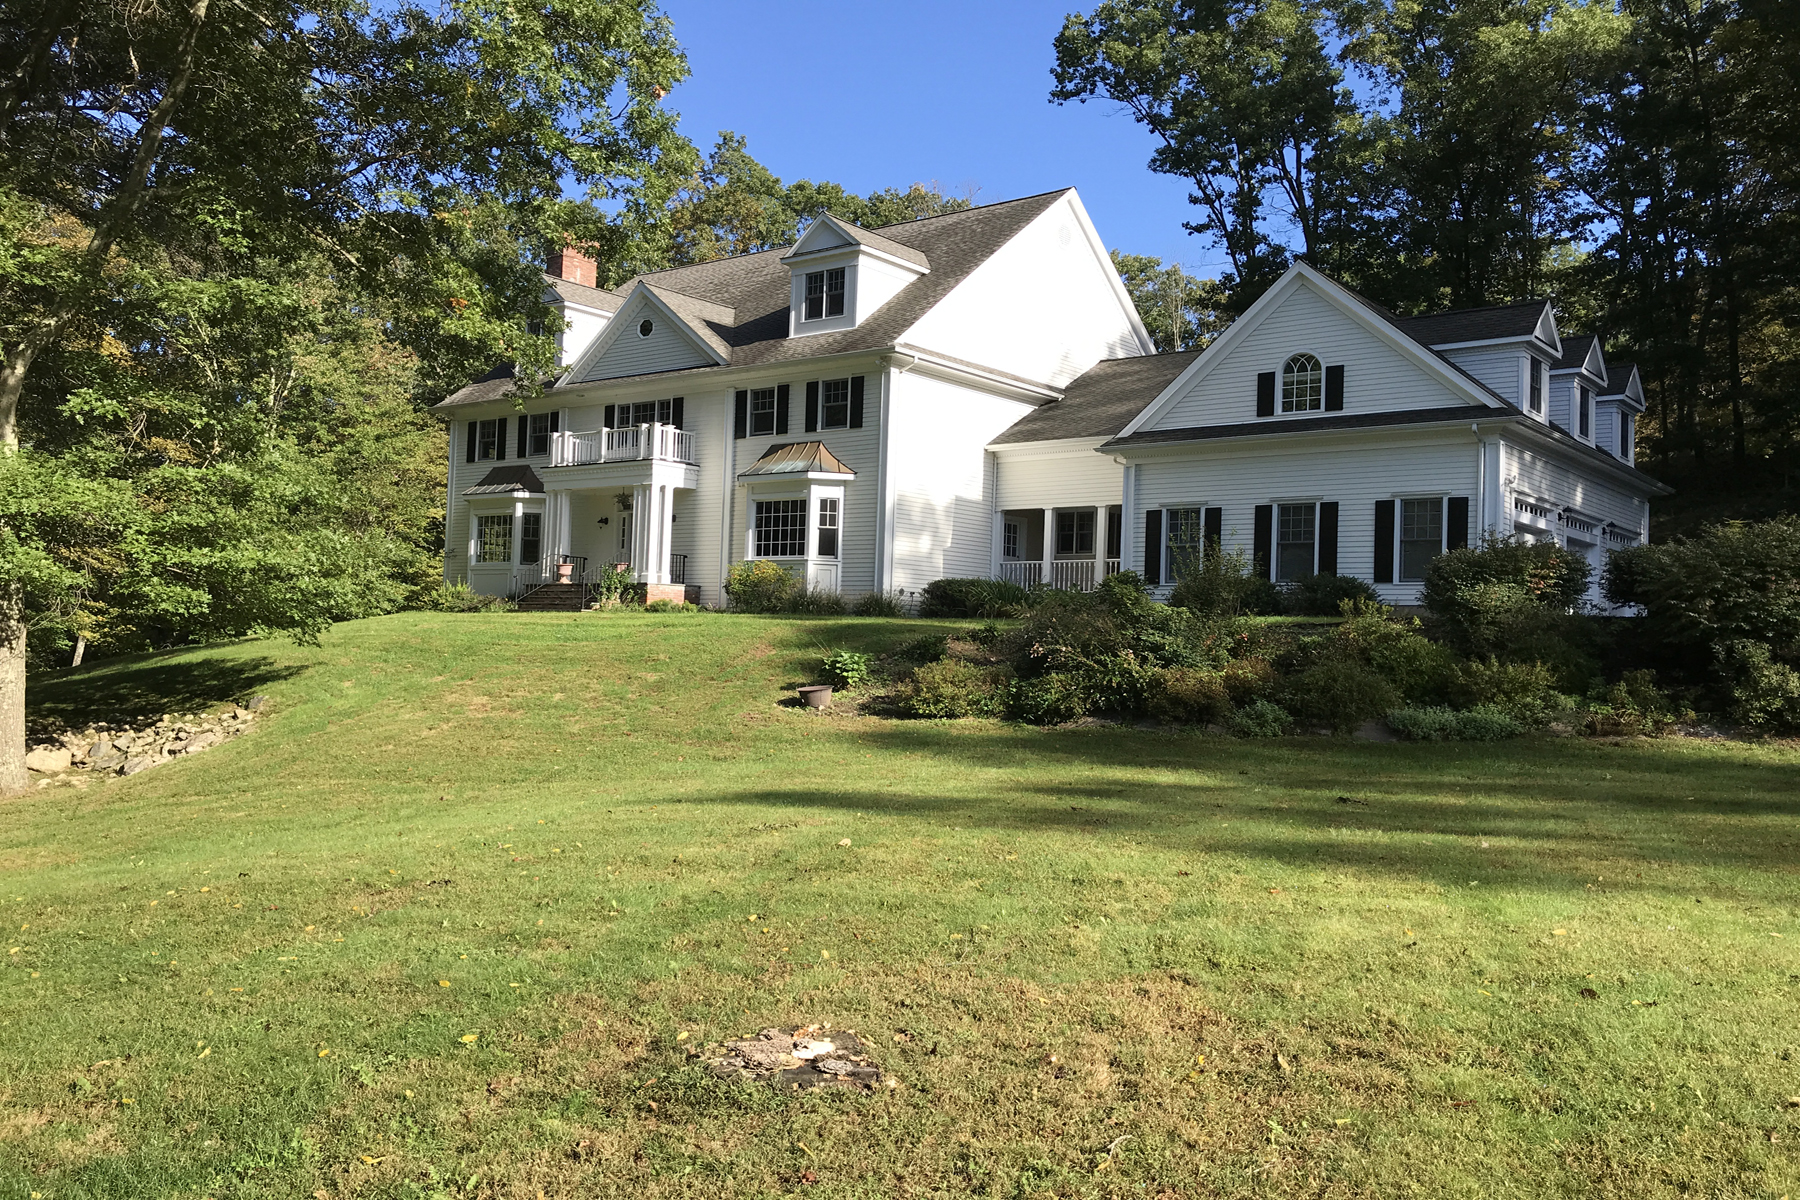 Single Family Home for Sale at The Perfect Family Home 487 Bedford Center Road Bedford, New York 10506 United States